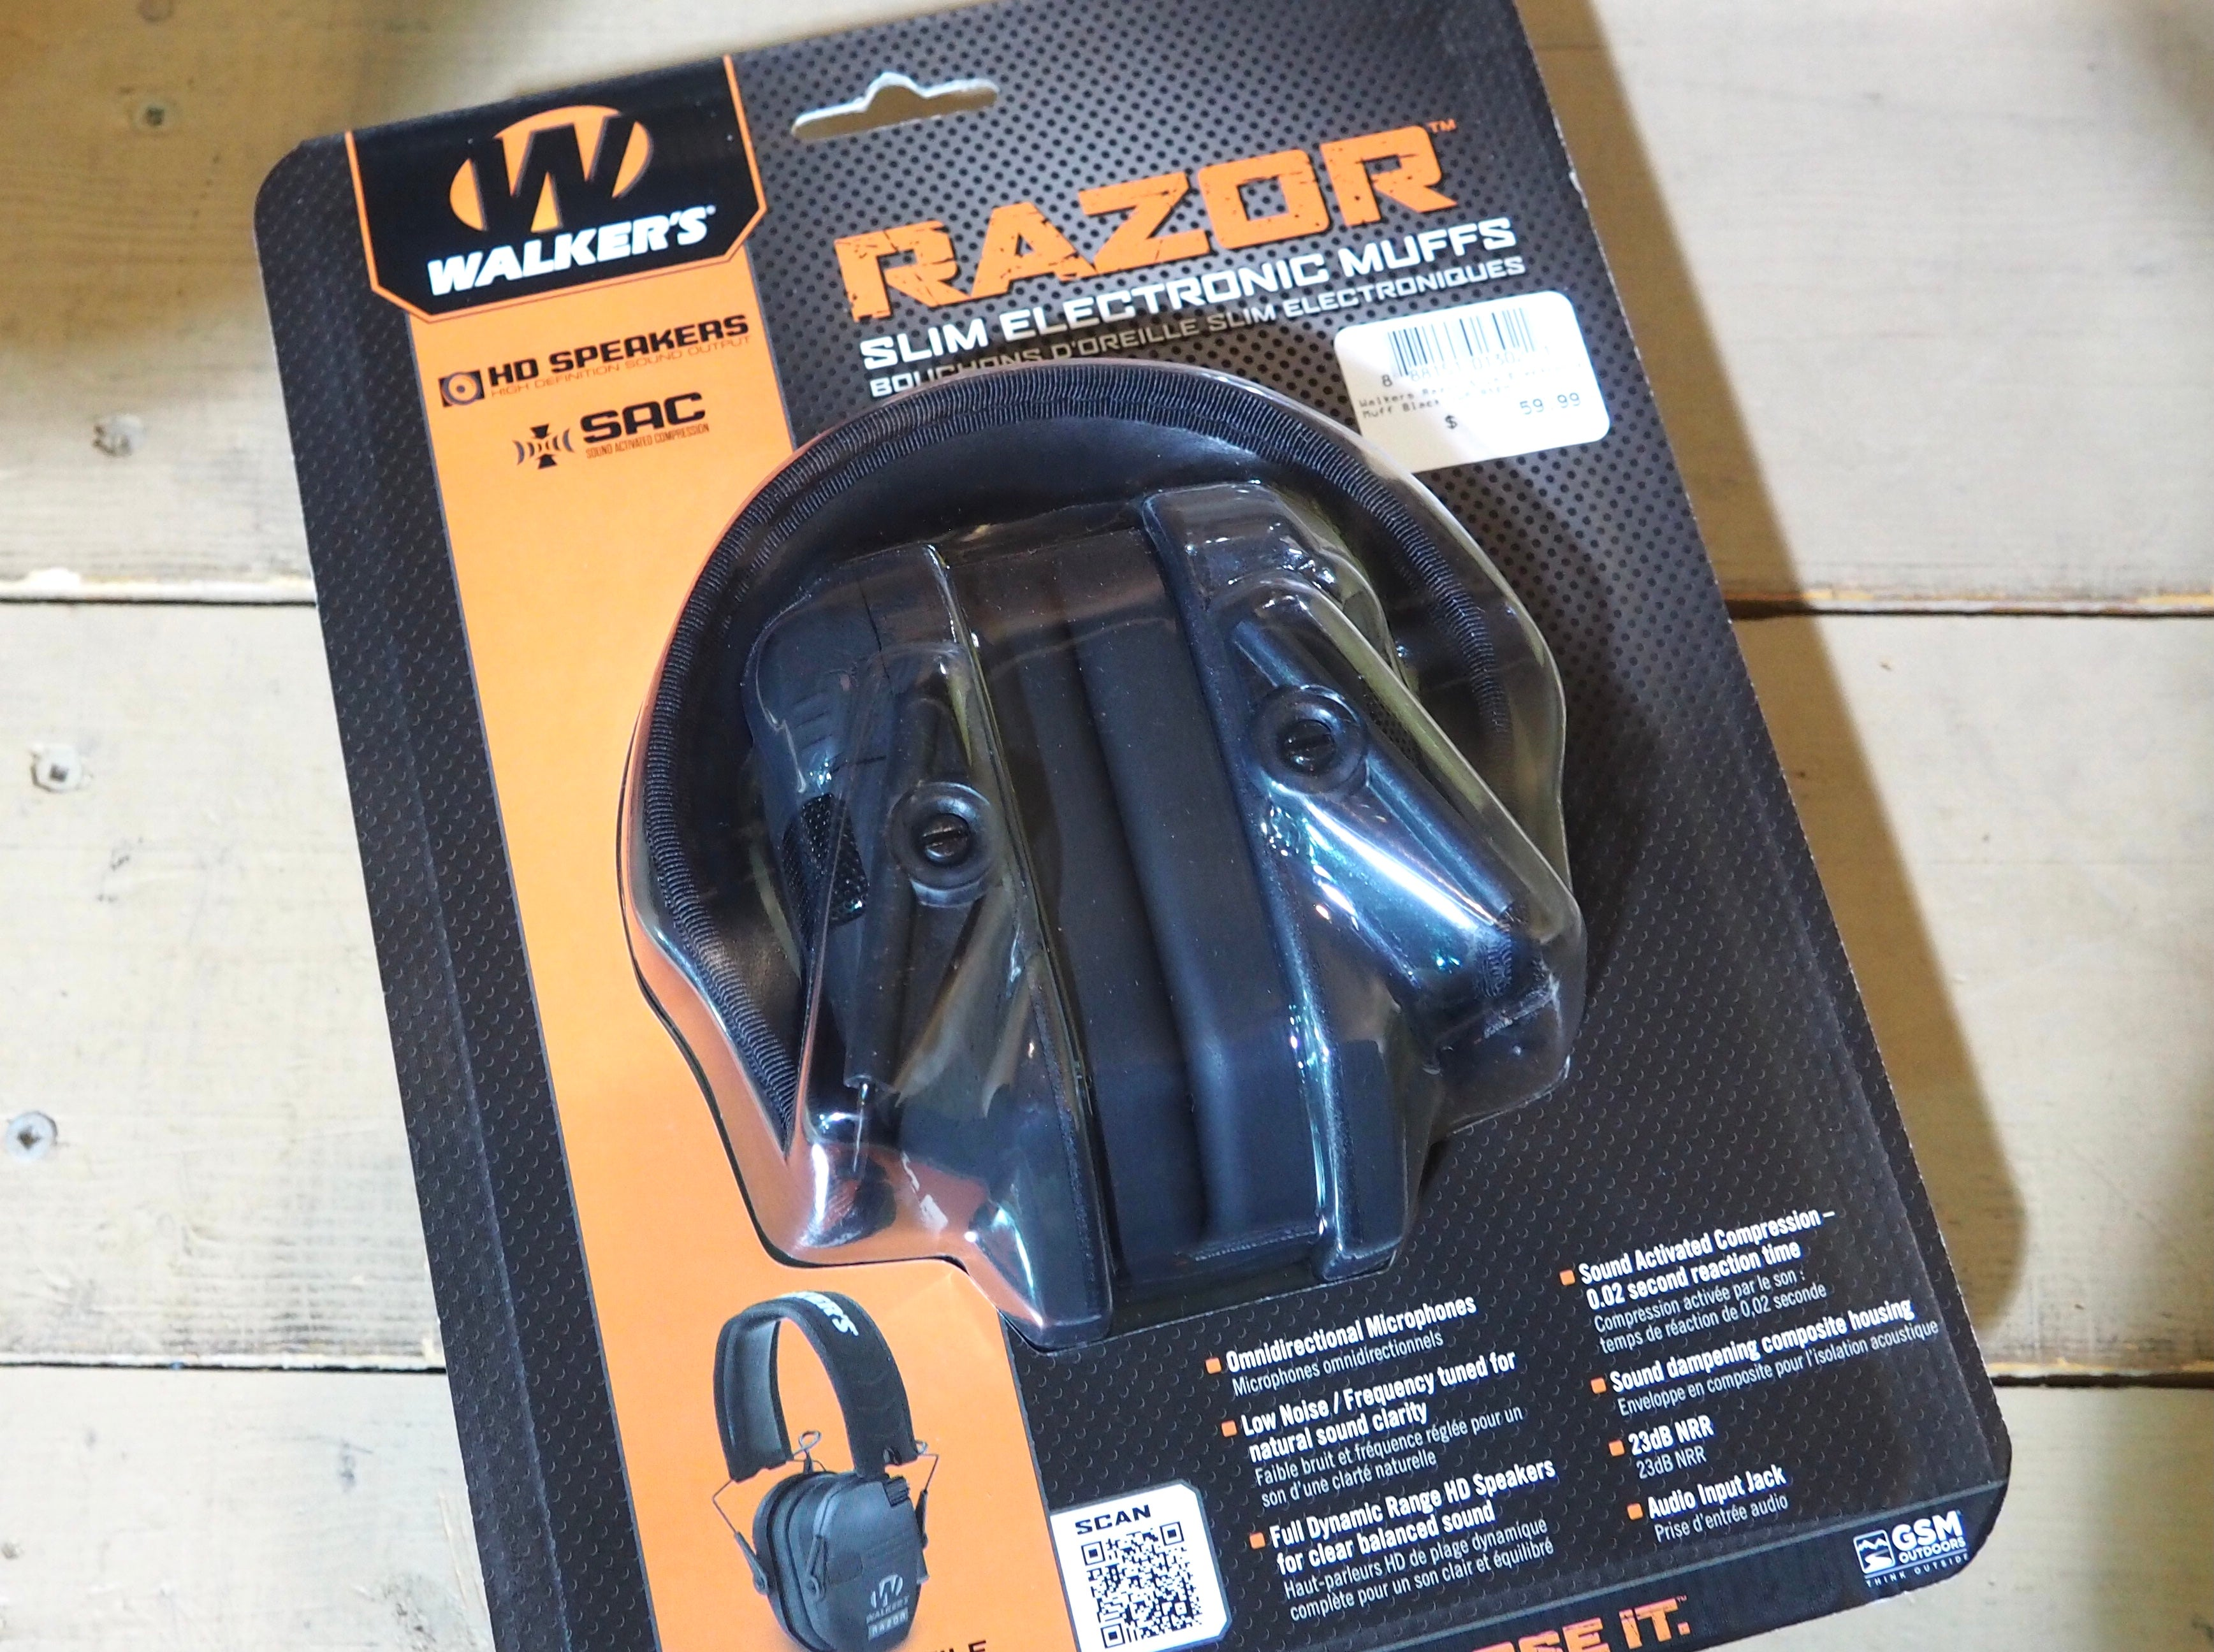 Walker's Razor Slim Electronic Muffs